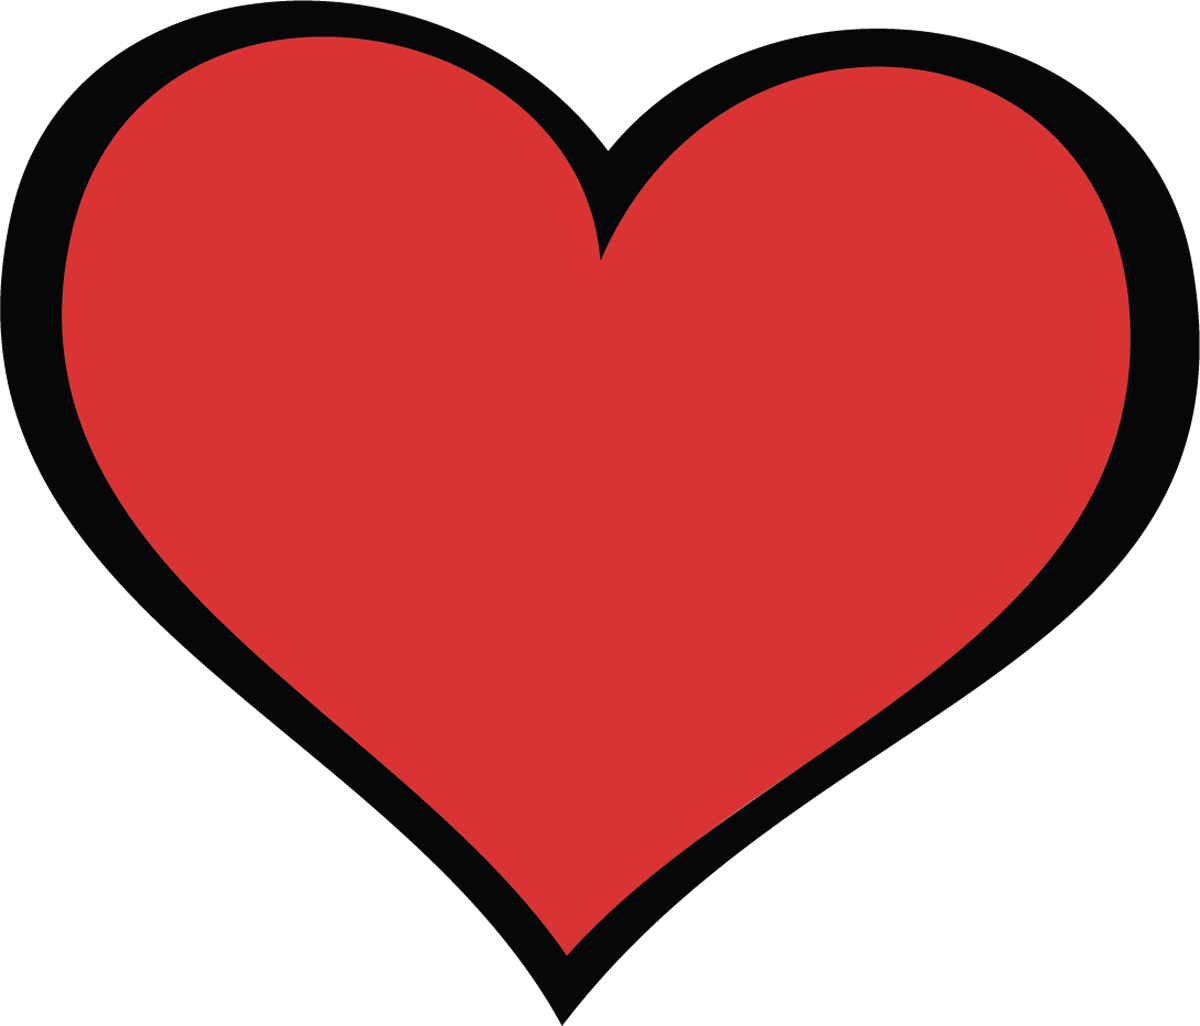 Love clipart image download Love Clipart | Clipart Panda - Free Clipart Images download